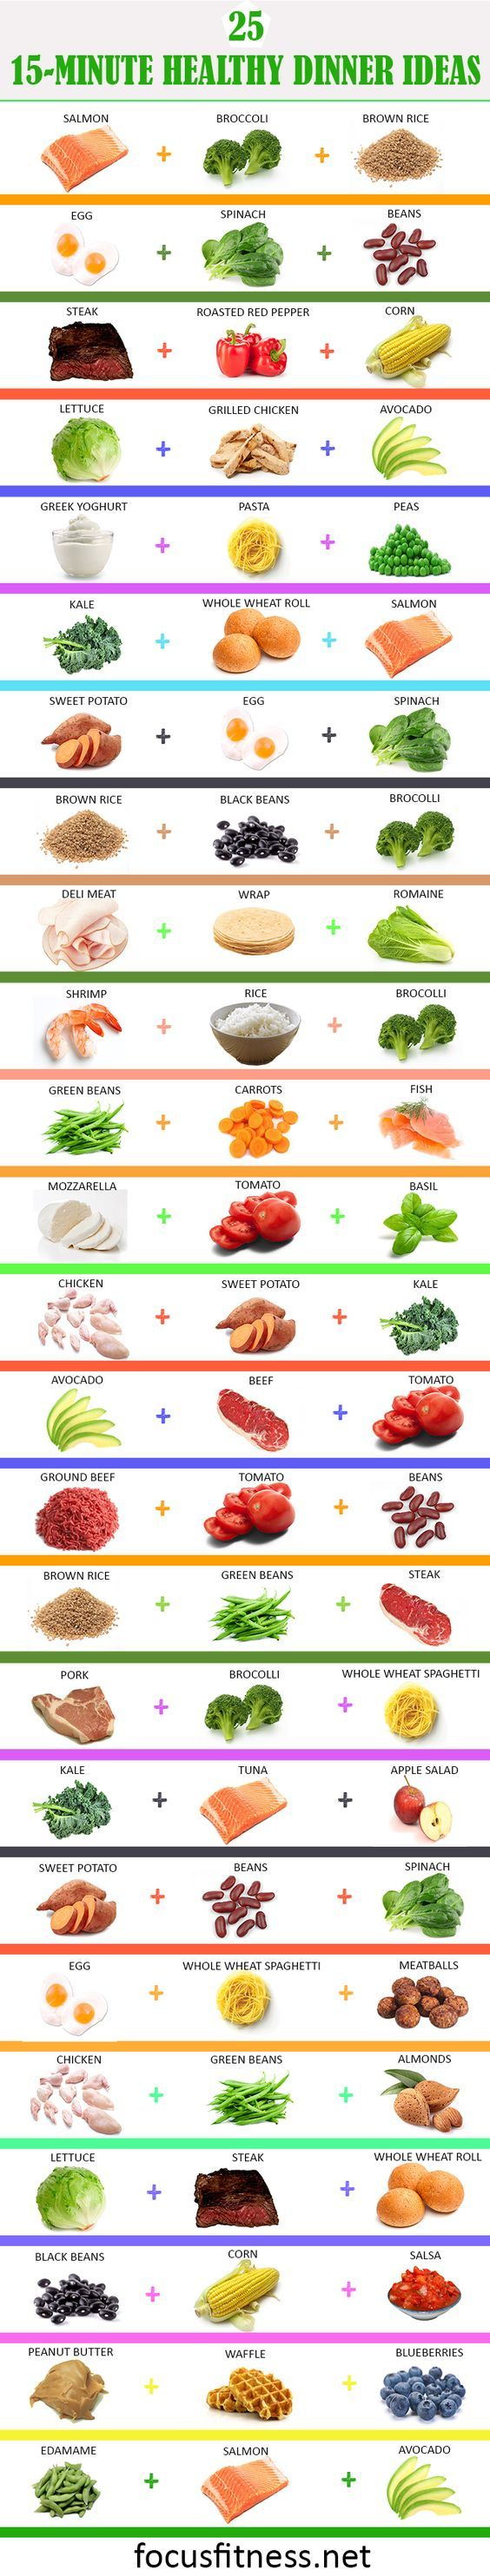 25 Healthy Dinner Ideas for Weight Loss That Take Less Than 15 Minutes to Make!: